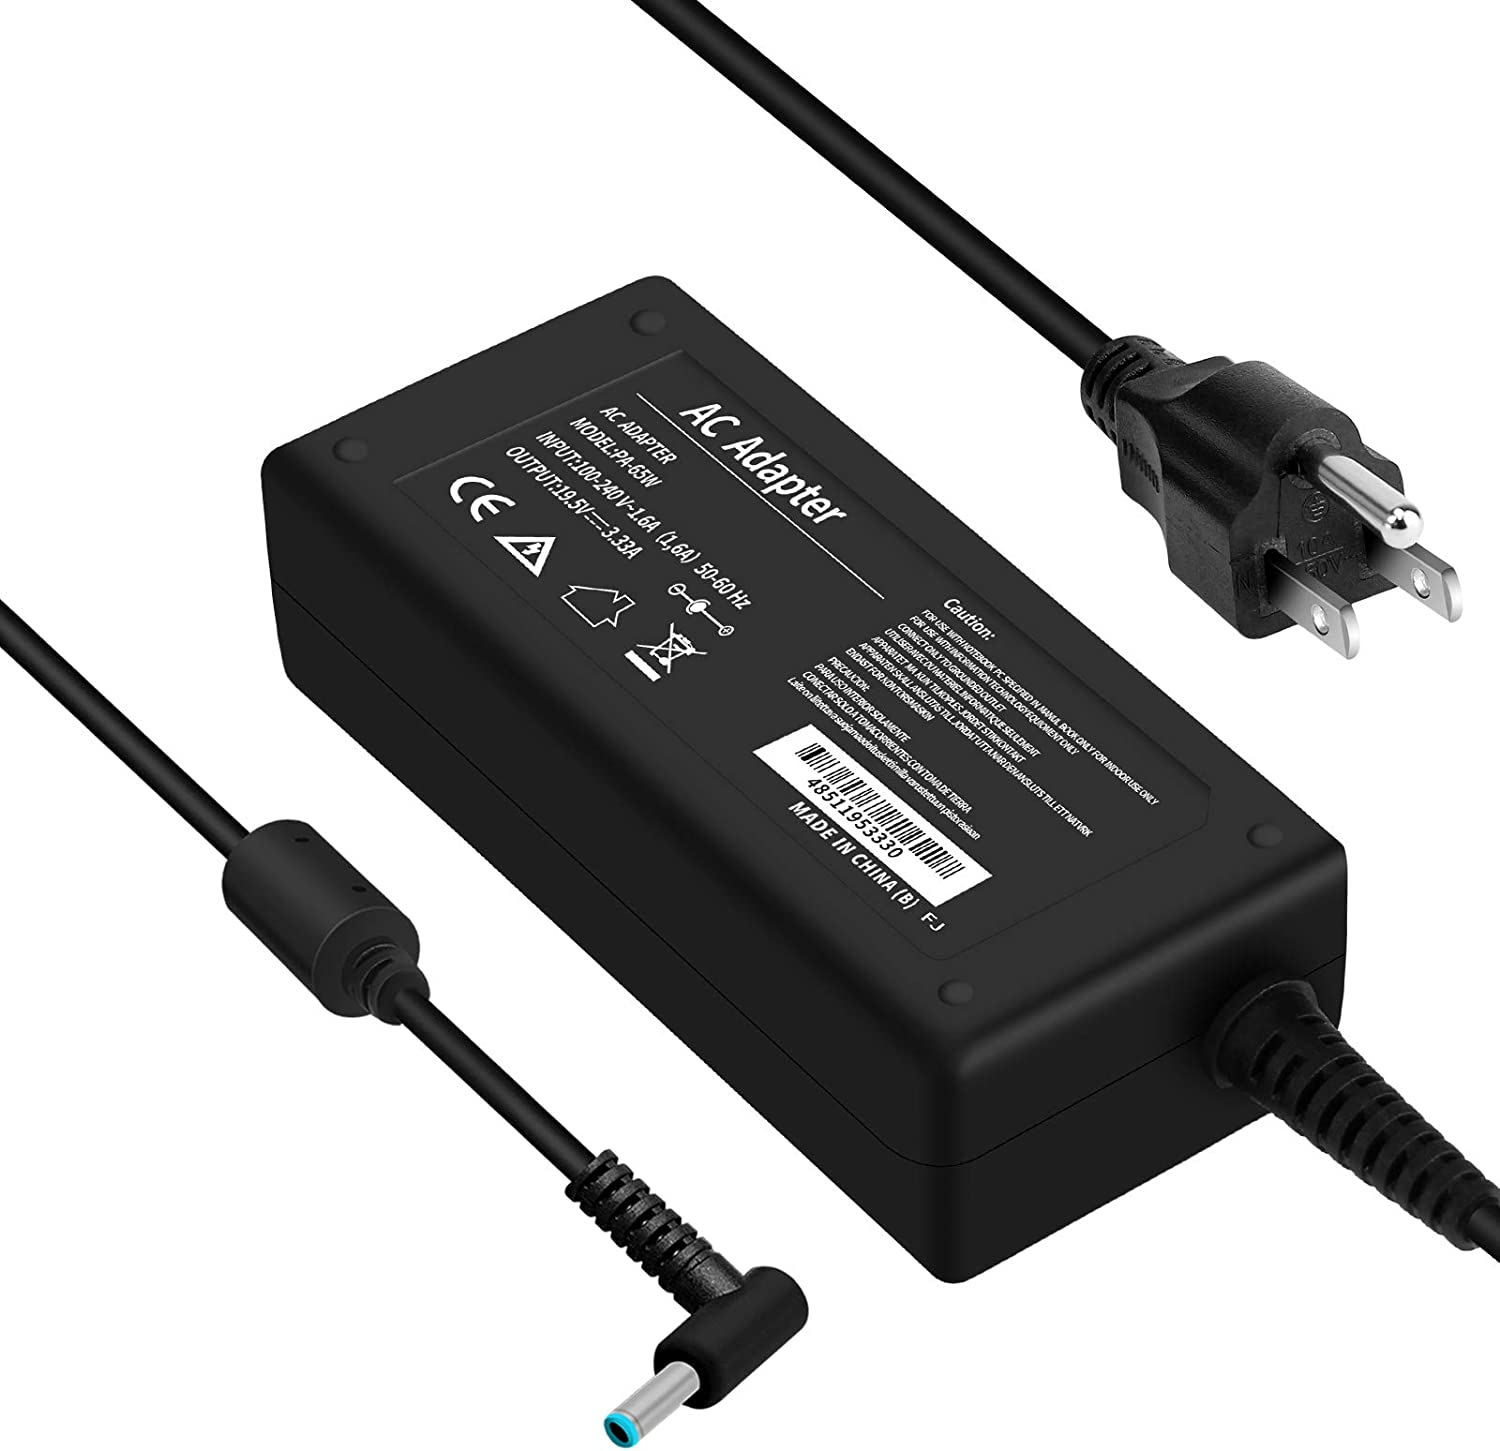 65W Laptop Charger for HP, 19.5V 3.33A AC Power Adapter for HP Pavilion 11 13 15, HP Stream 13 11 14, HP Spectre Ultrabook 13, 4.5X3.0 mm Smart Blue Tip, Power Cord Included